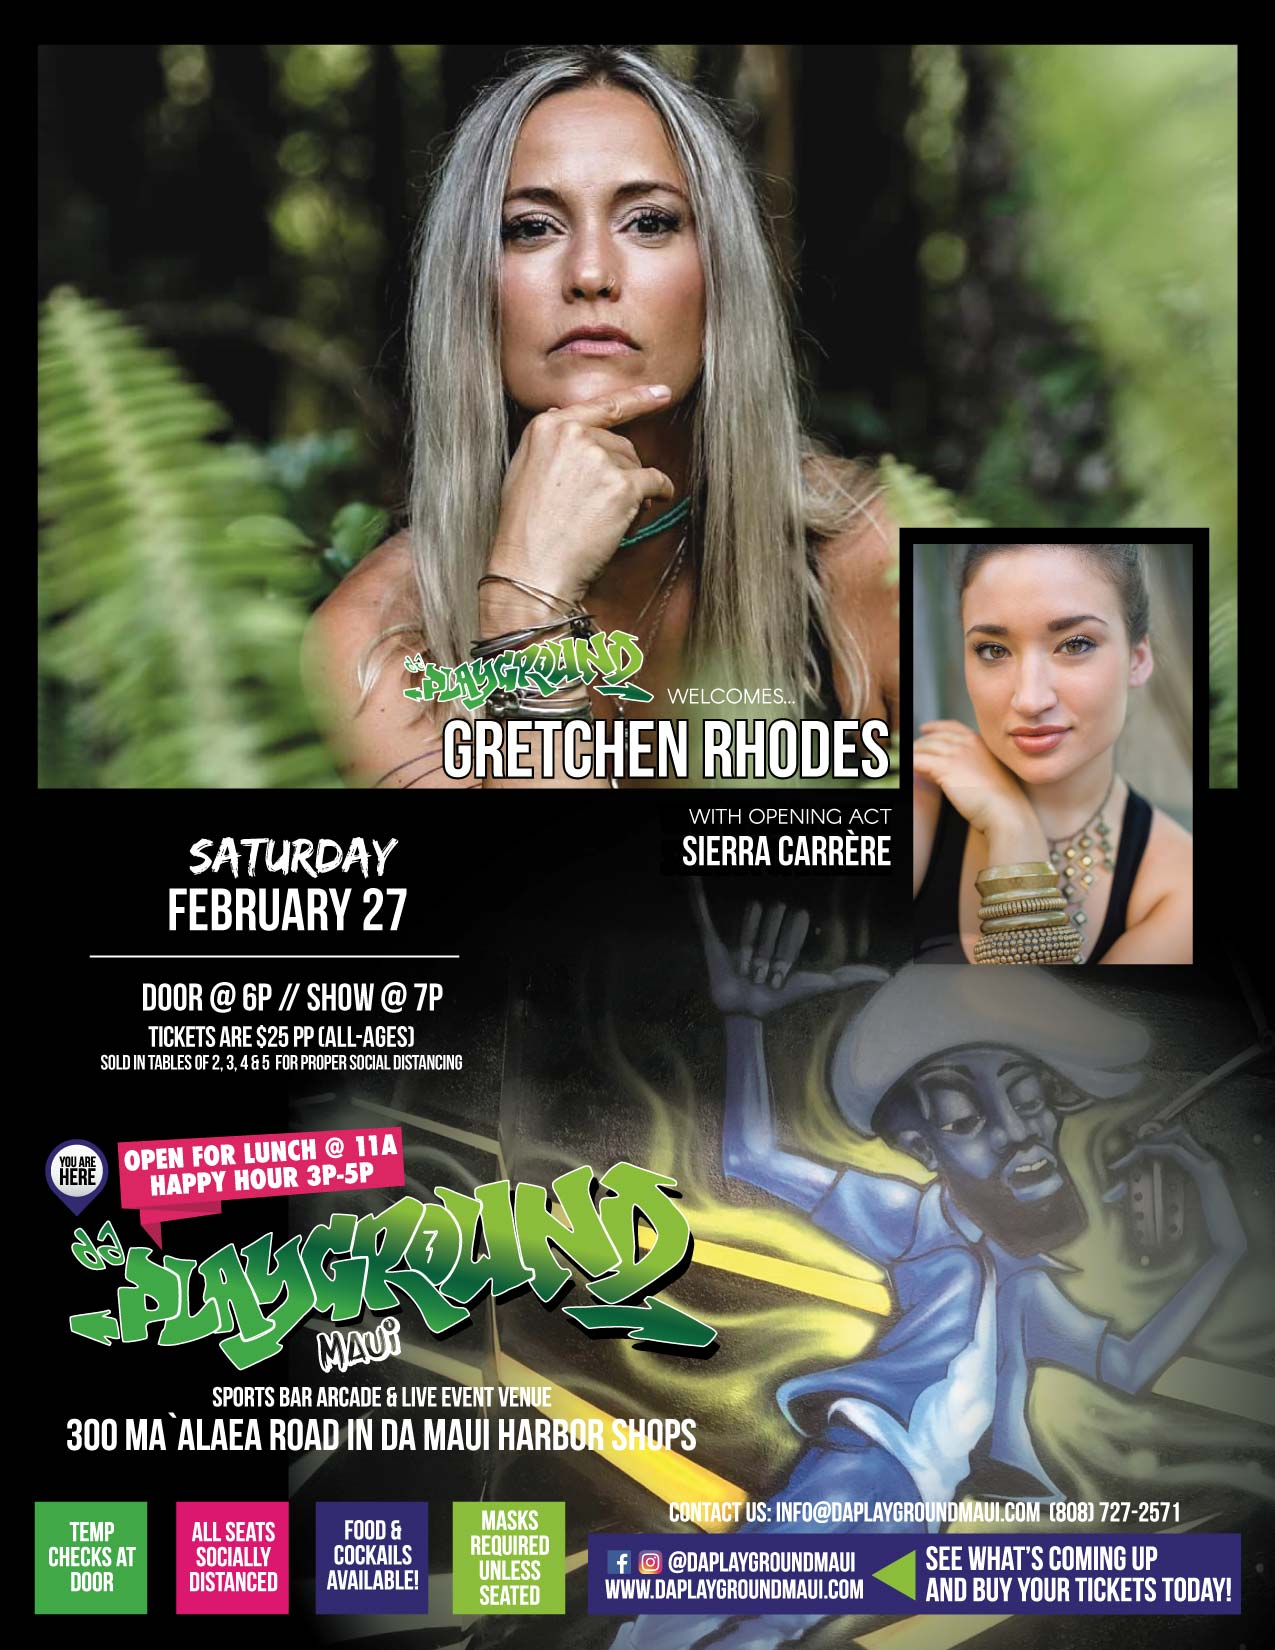 da Playground Maui welcomes Gretchen Rhodes with guest Sierra Carrère